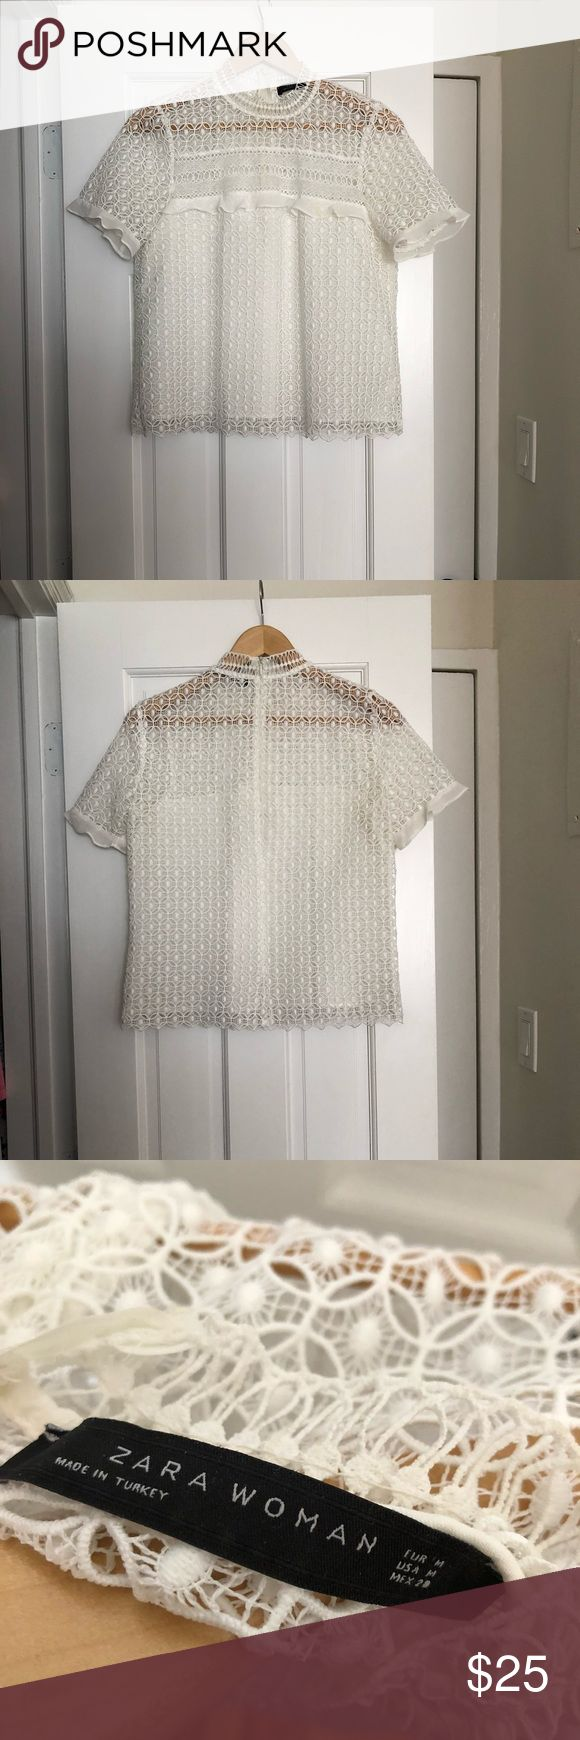 Zara Woman Lace Blouse White Zara Lace and Ruffle Blouse. Slightly high neck and 3/4 zip up the back. PERFECT top for SPRING!! It's a size medium, but runs a little small. There's a hint of a yellow stain on the front ruffle across the chest (see photo). I will try to better get it out before shipped. Please make an offer if interested :) Zara Tops Blouses